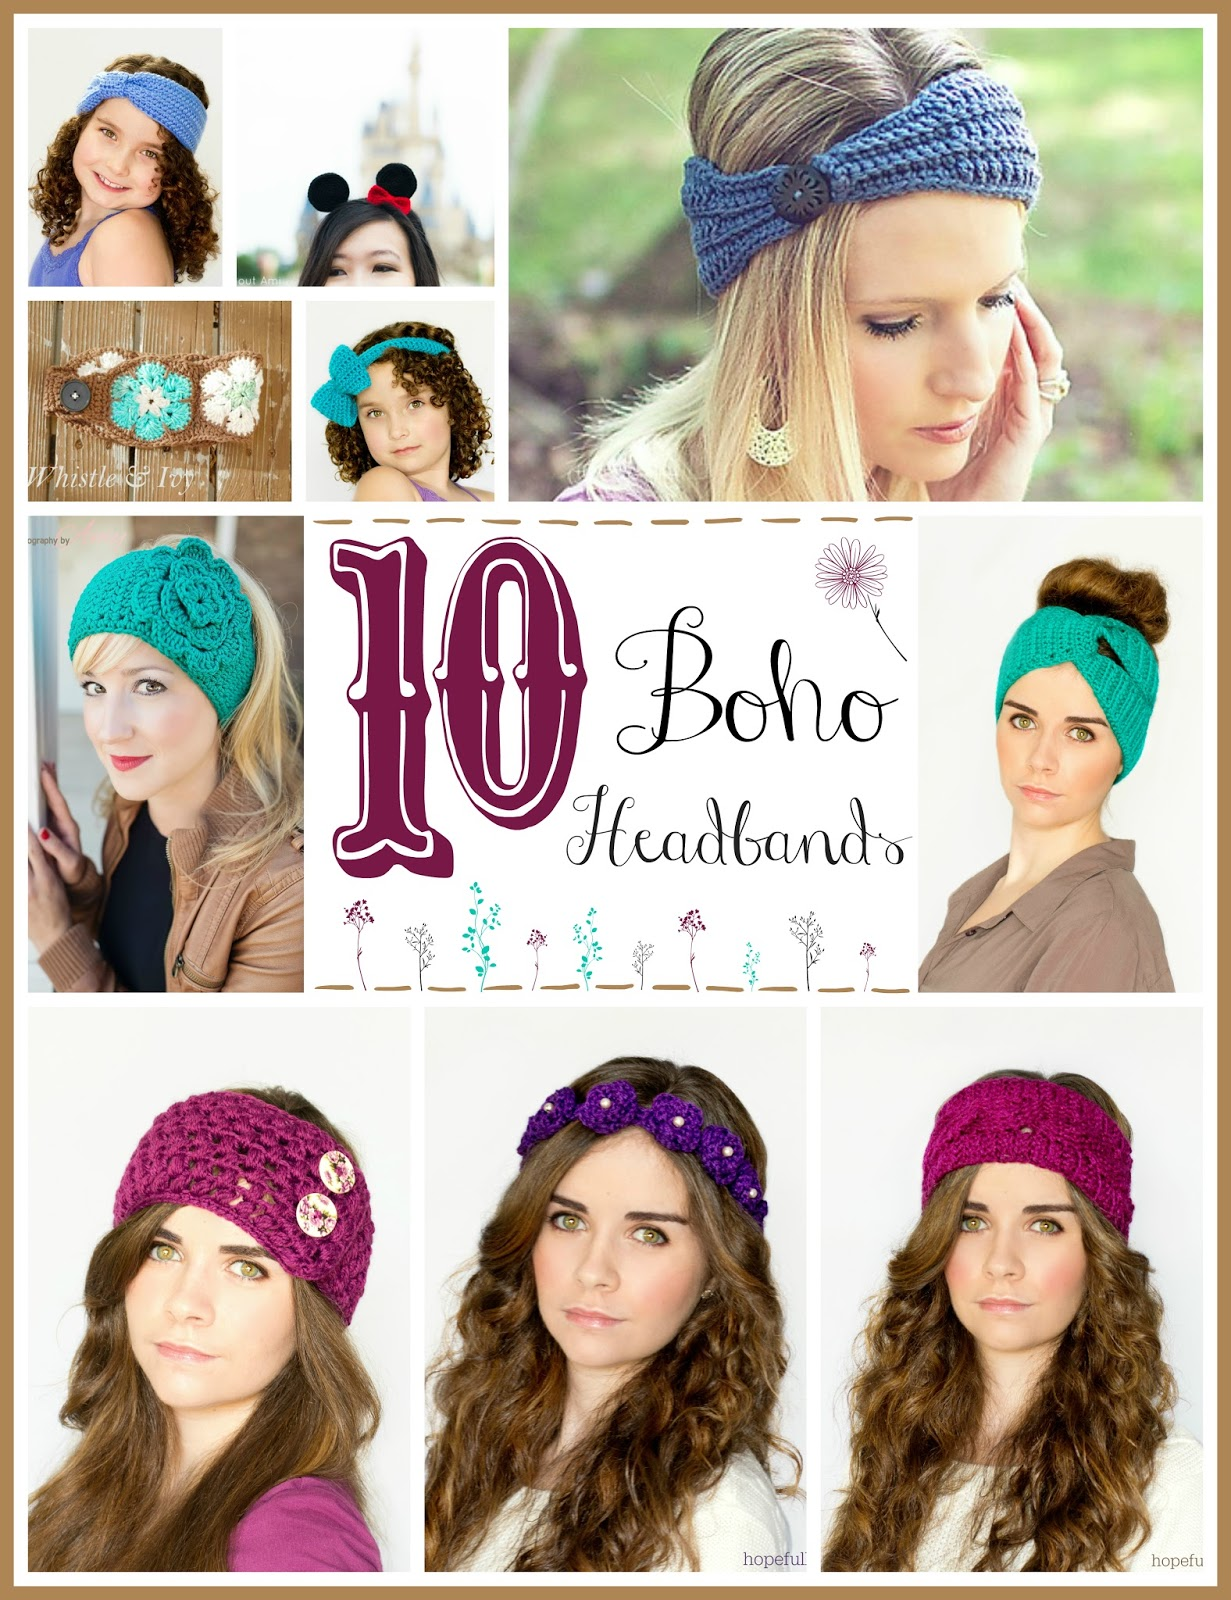 http://2.bp.blogspot.com/-mHLnXleOlaQ/U2HC-HGC9-I/AAAAAAAAJAs/kBo9ELSlt7w/s1600/10+Free+Beautiful+Boho+Headband+Crochet+Patterns+1.jpg